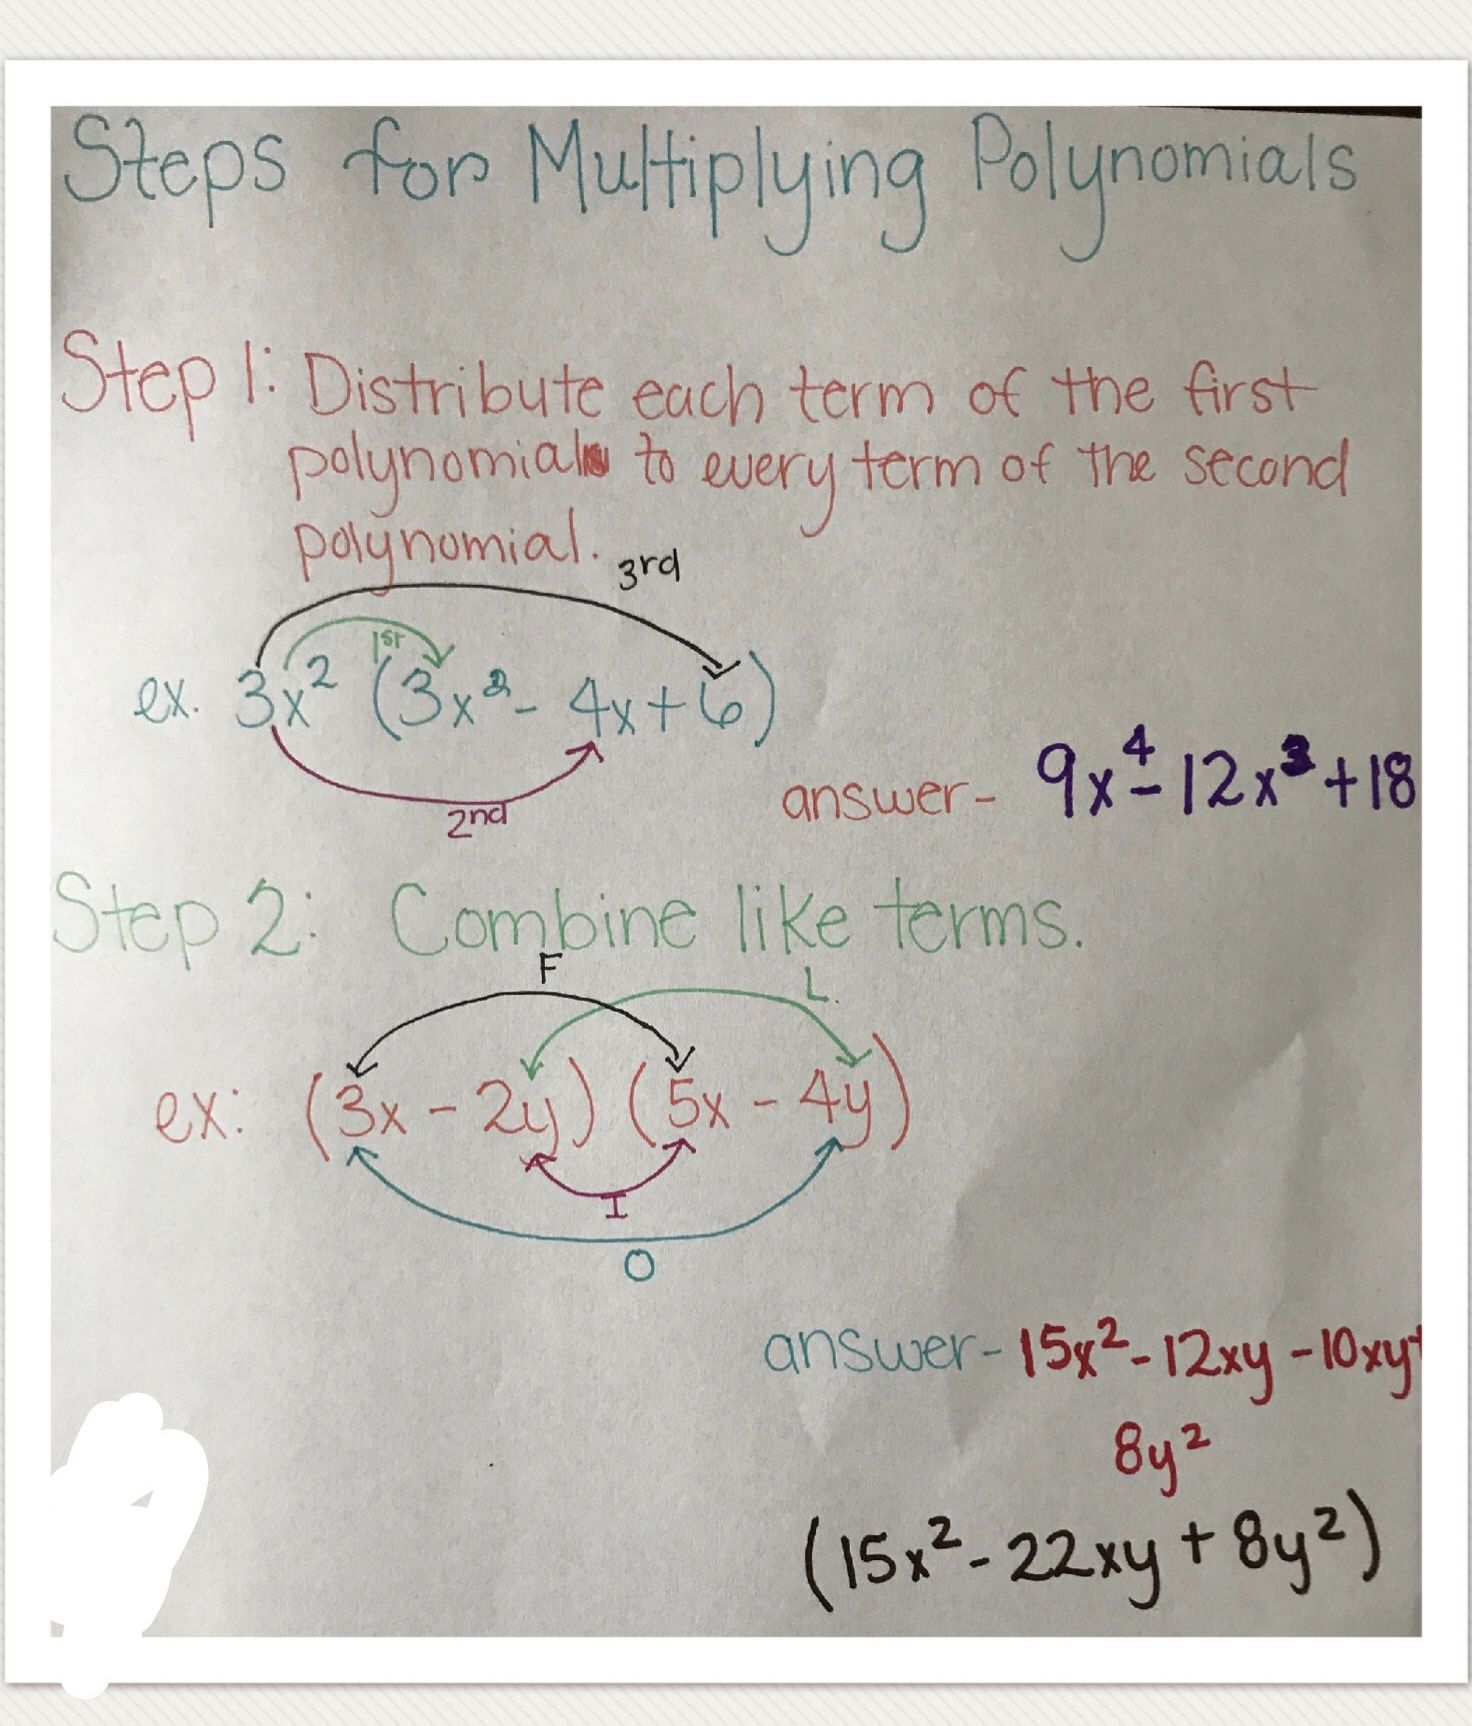 Multiplying Polynomials Steps With Images